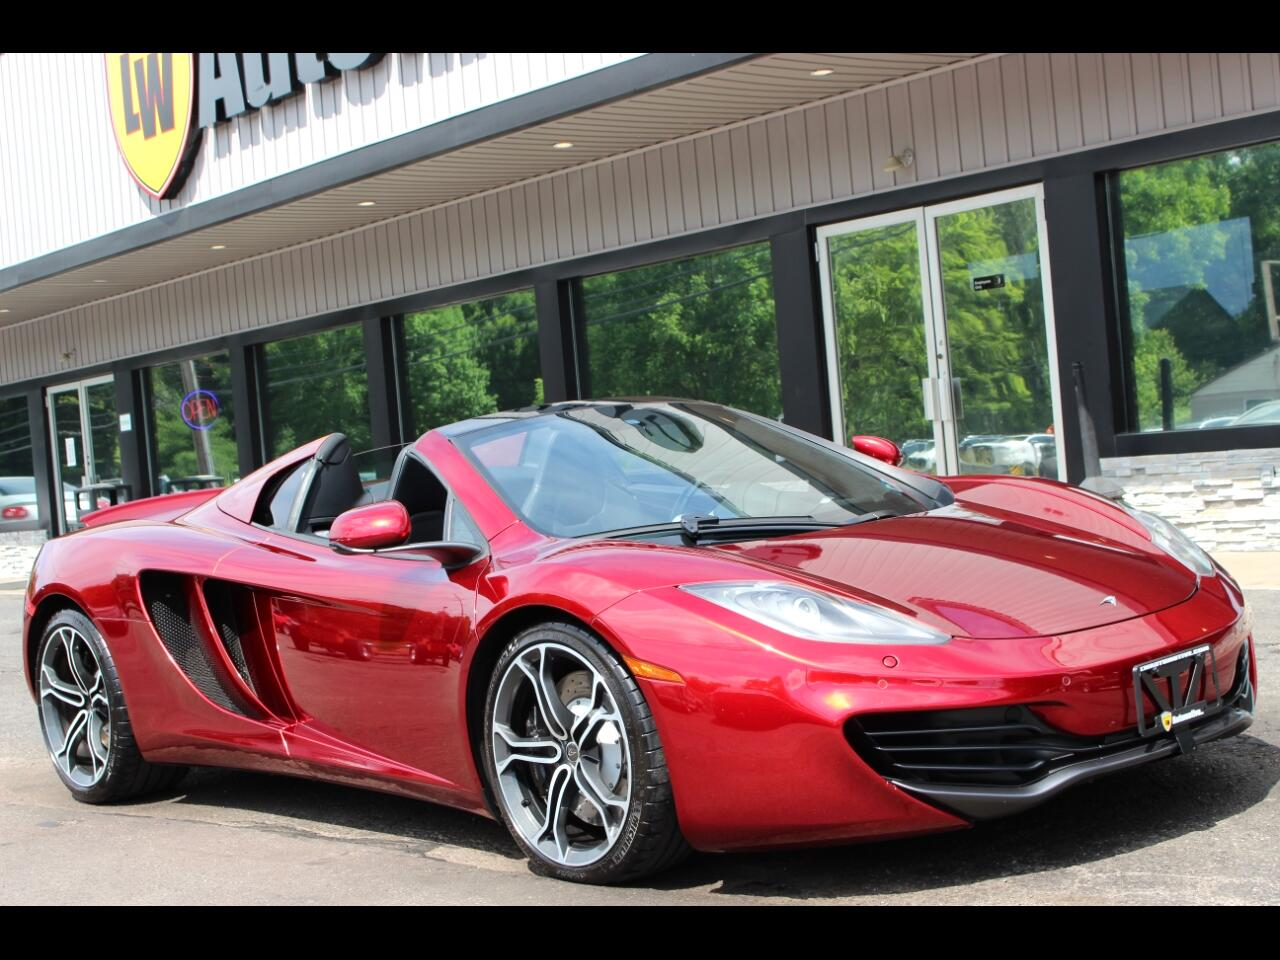 2014 McLaren MP4-12c 2dr Conv Spider